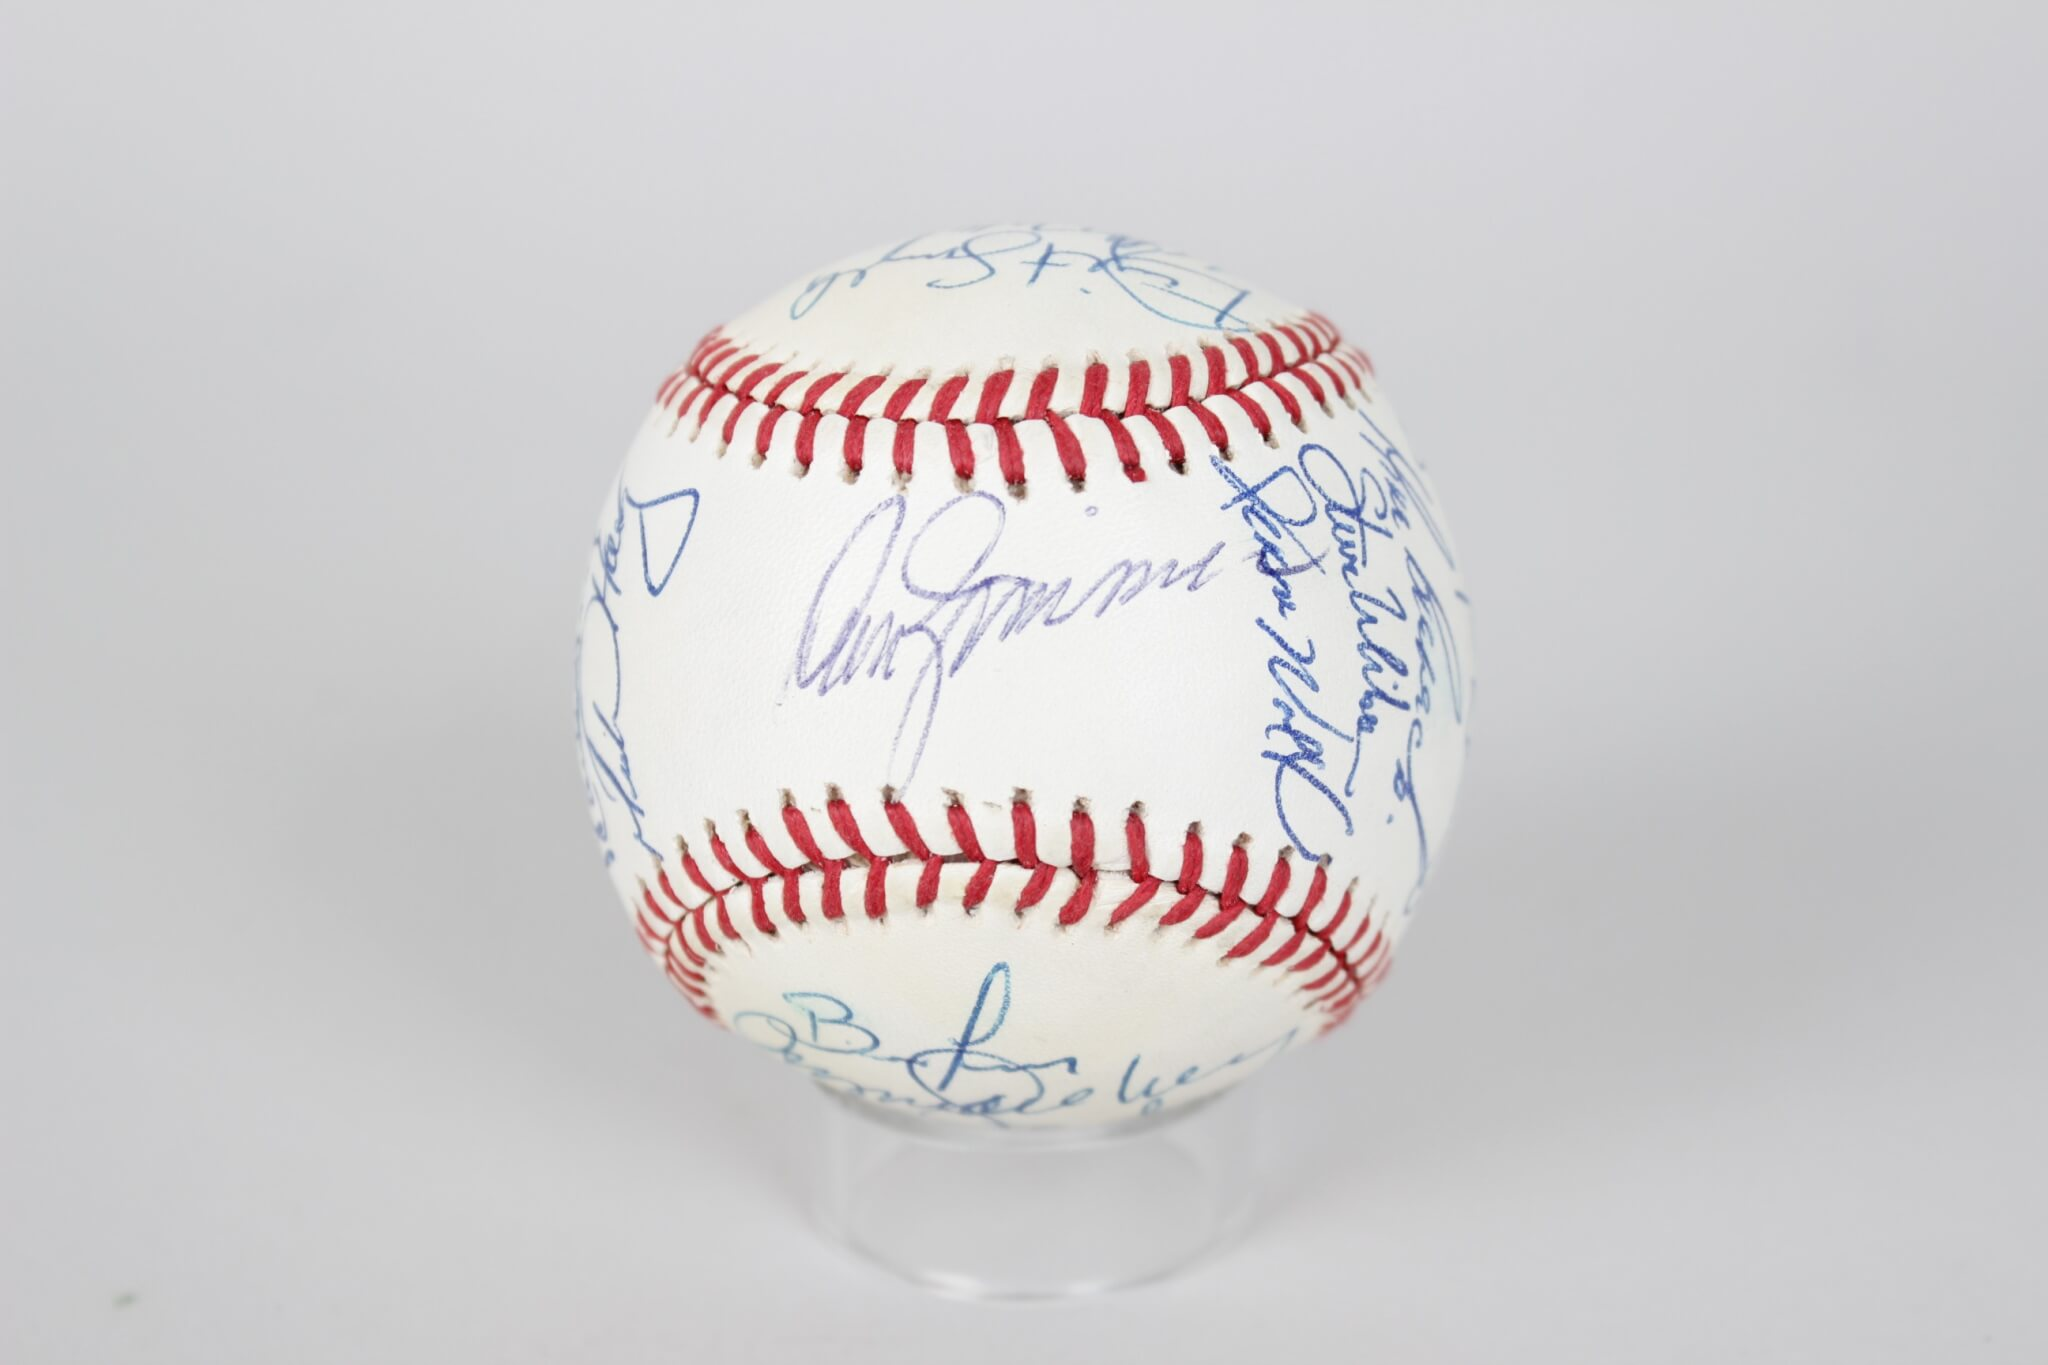 1990 Chicago Cubs Team Signed ONL (White) Baseball Don Zimmer, Greg Maddux, Andre Dawson